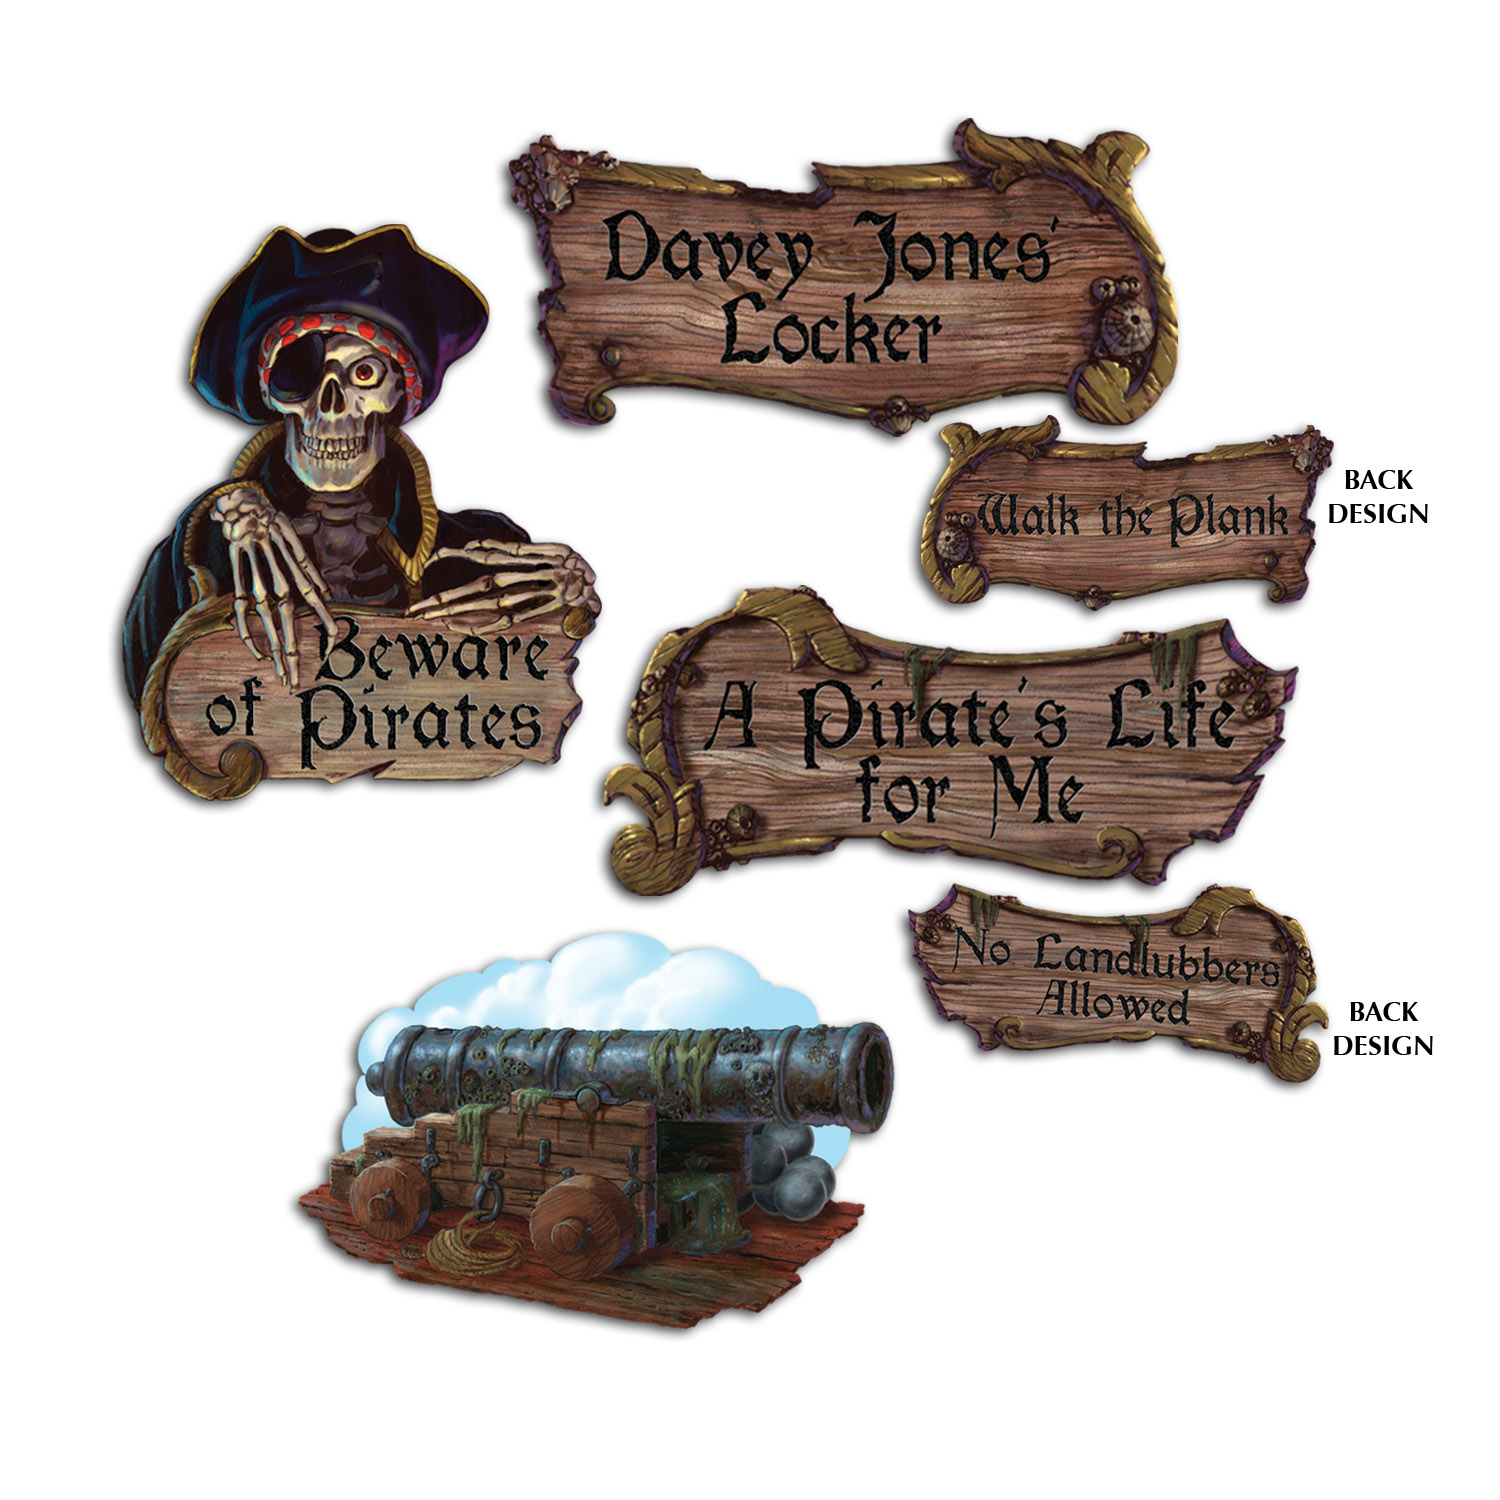 Pirate Cutouts (Pack of 48) Pirate Cutouts, Mini cutouts, Wall decor, Cheap pirate supplies, Skull Decor, Pirate Cannon, Pirate decor, Pirate party ideas, Birthday decorations, Wholesale party supplies, Inexpensive pirates